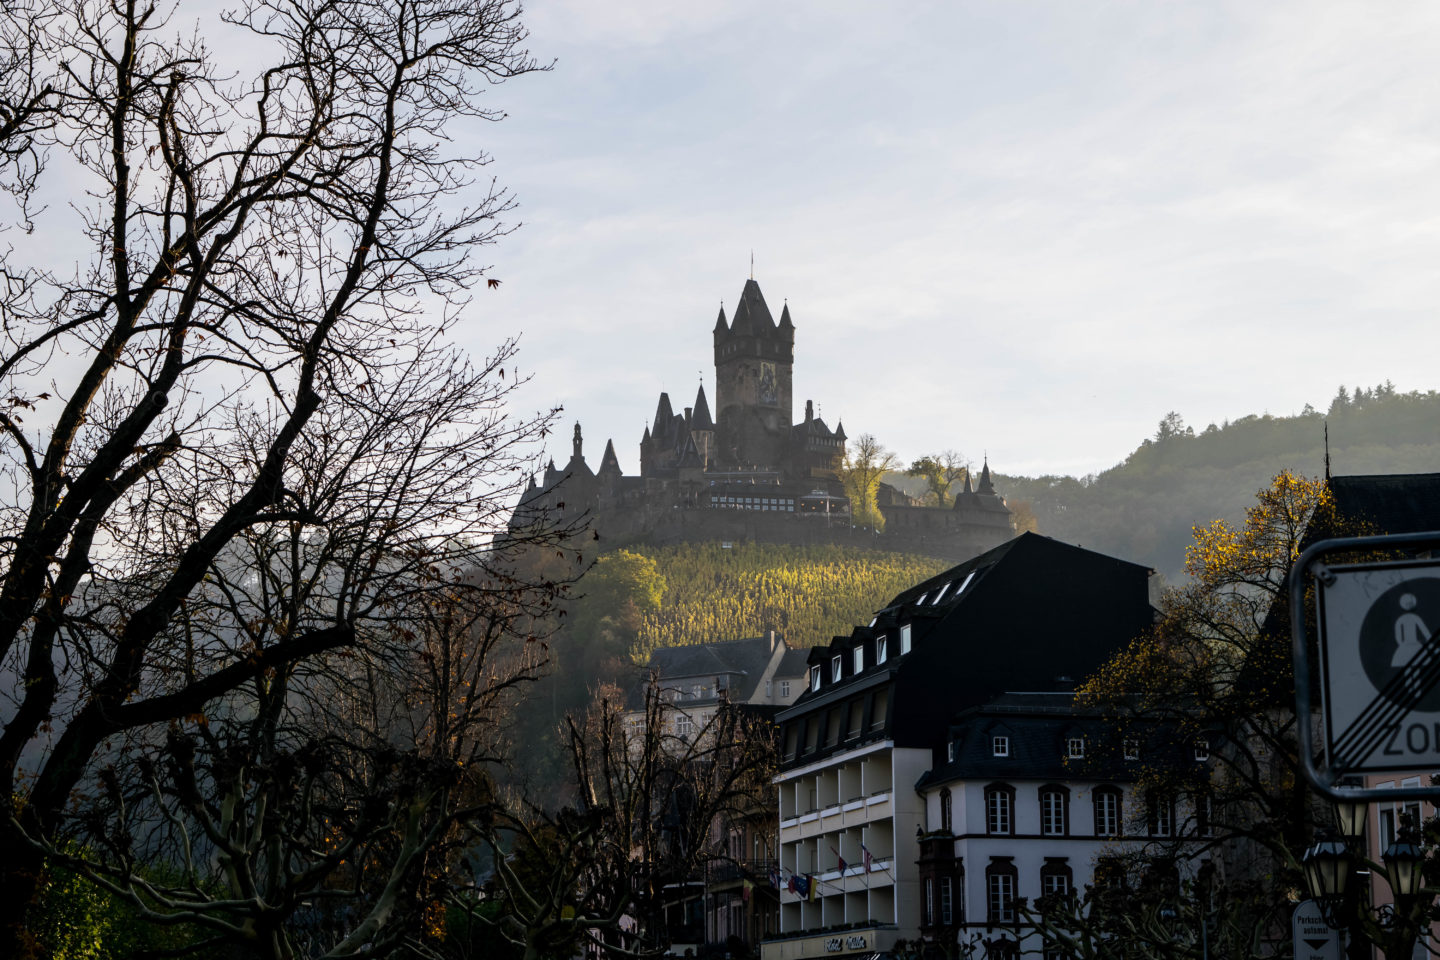 The Cochem Castle from the town